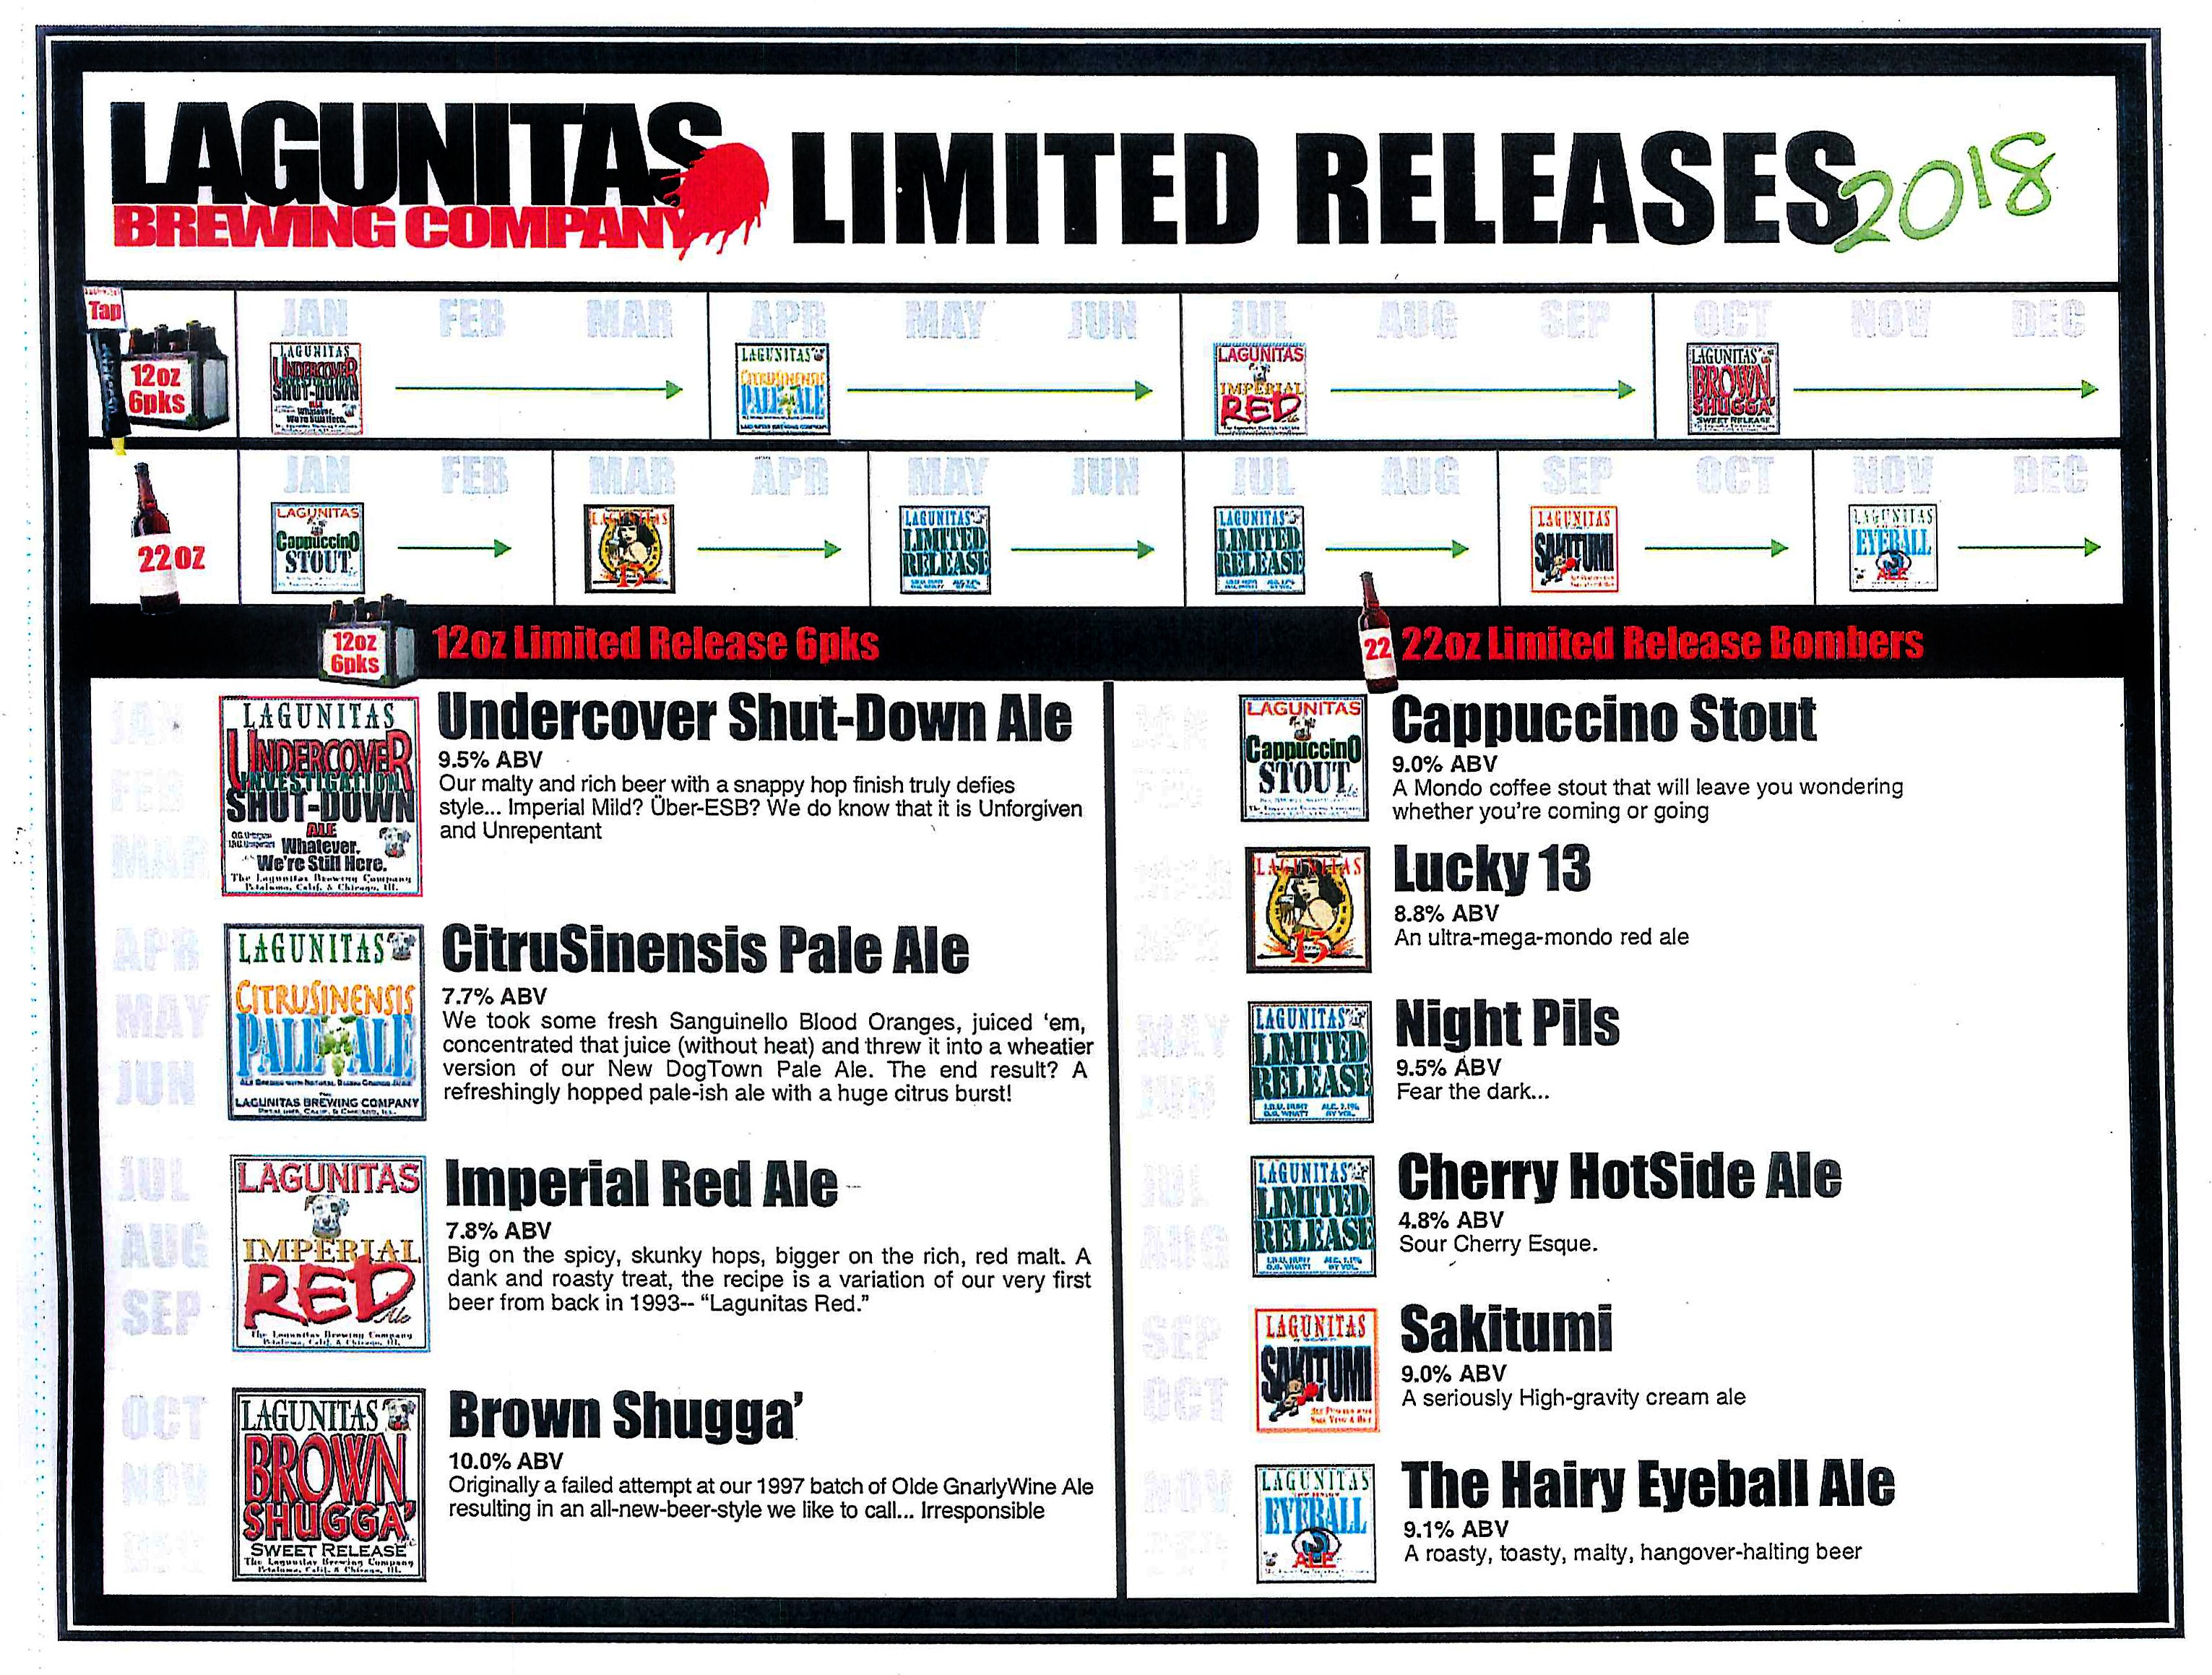 March Calendar Blank 2019 Más Recientes Lagunitas Announces 2018 Release Calendar Willitized Coffee Stout Of March Calendar Blank 2019 Más Caliente 2019 March for Life Info